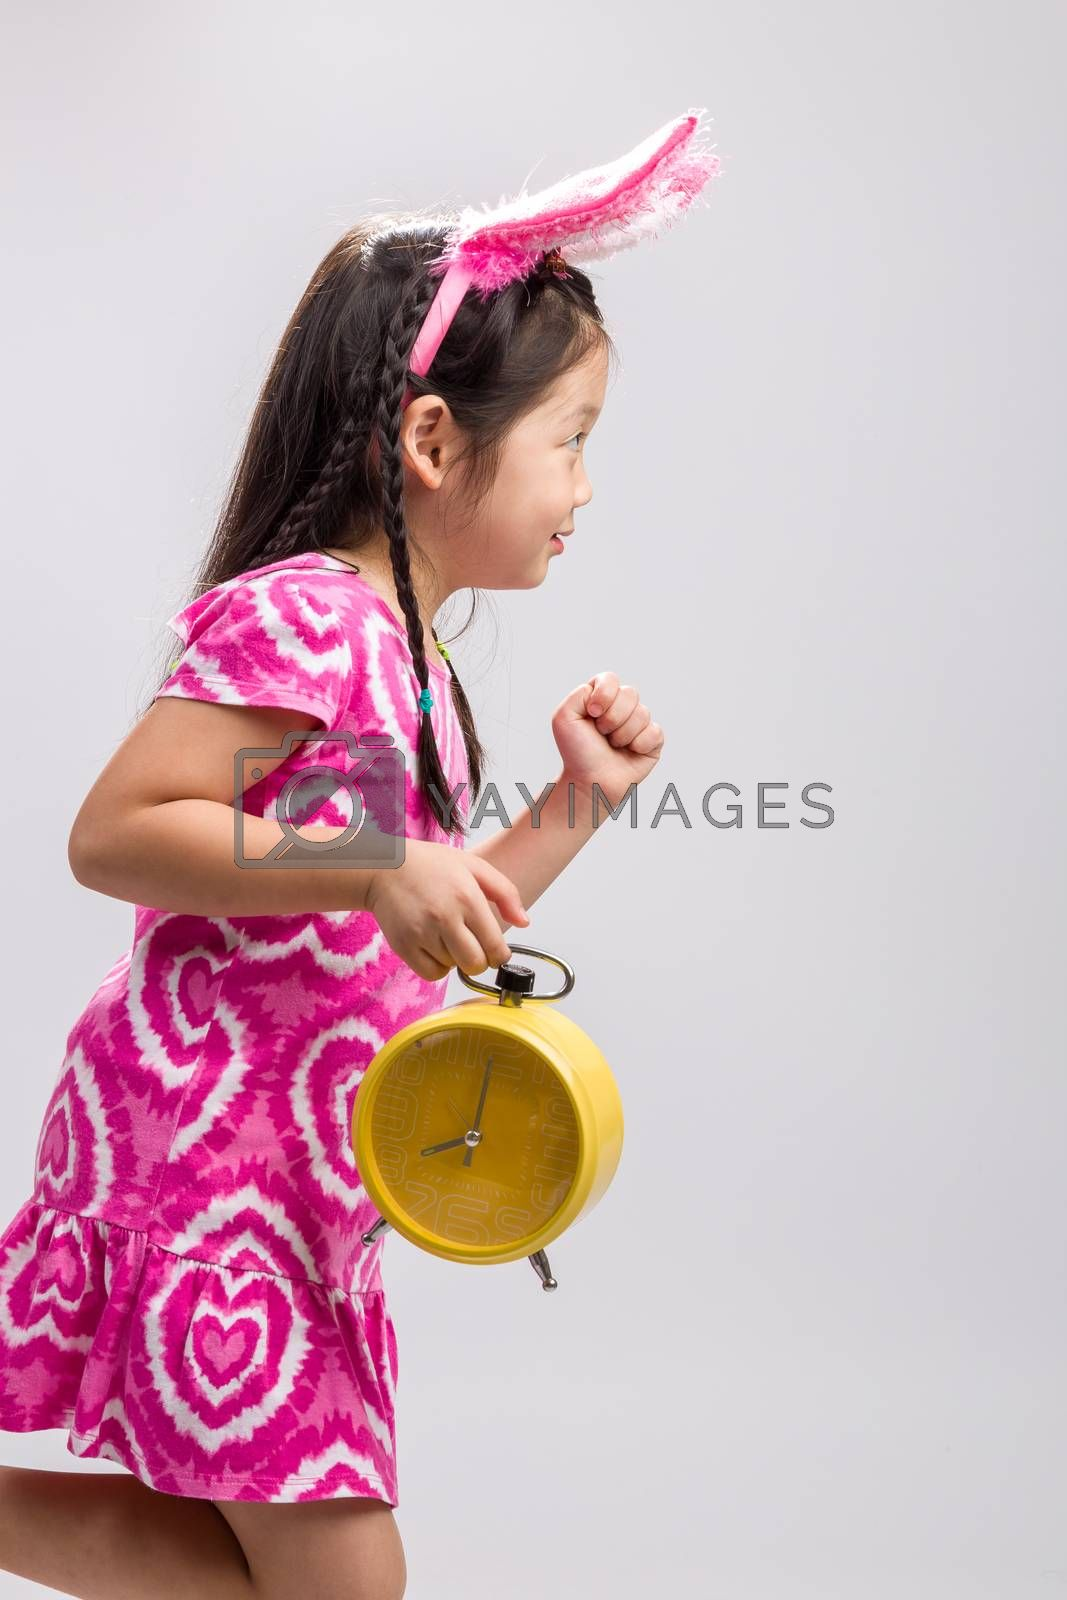 Child holding clock illustrating time concept on white background.